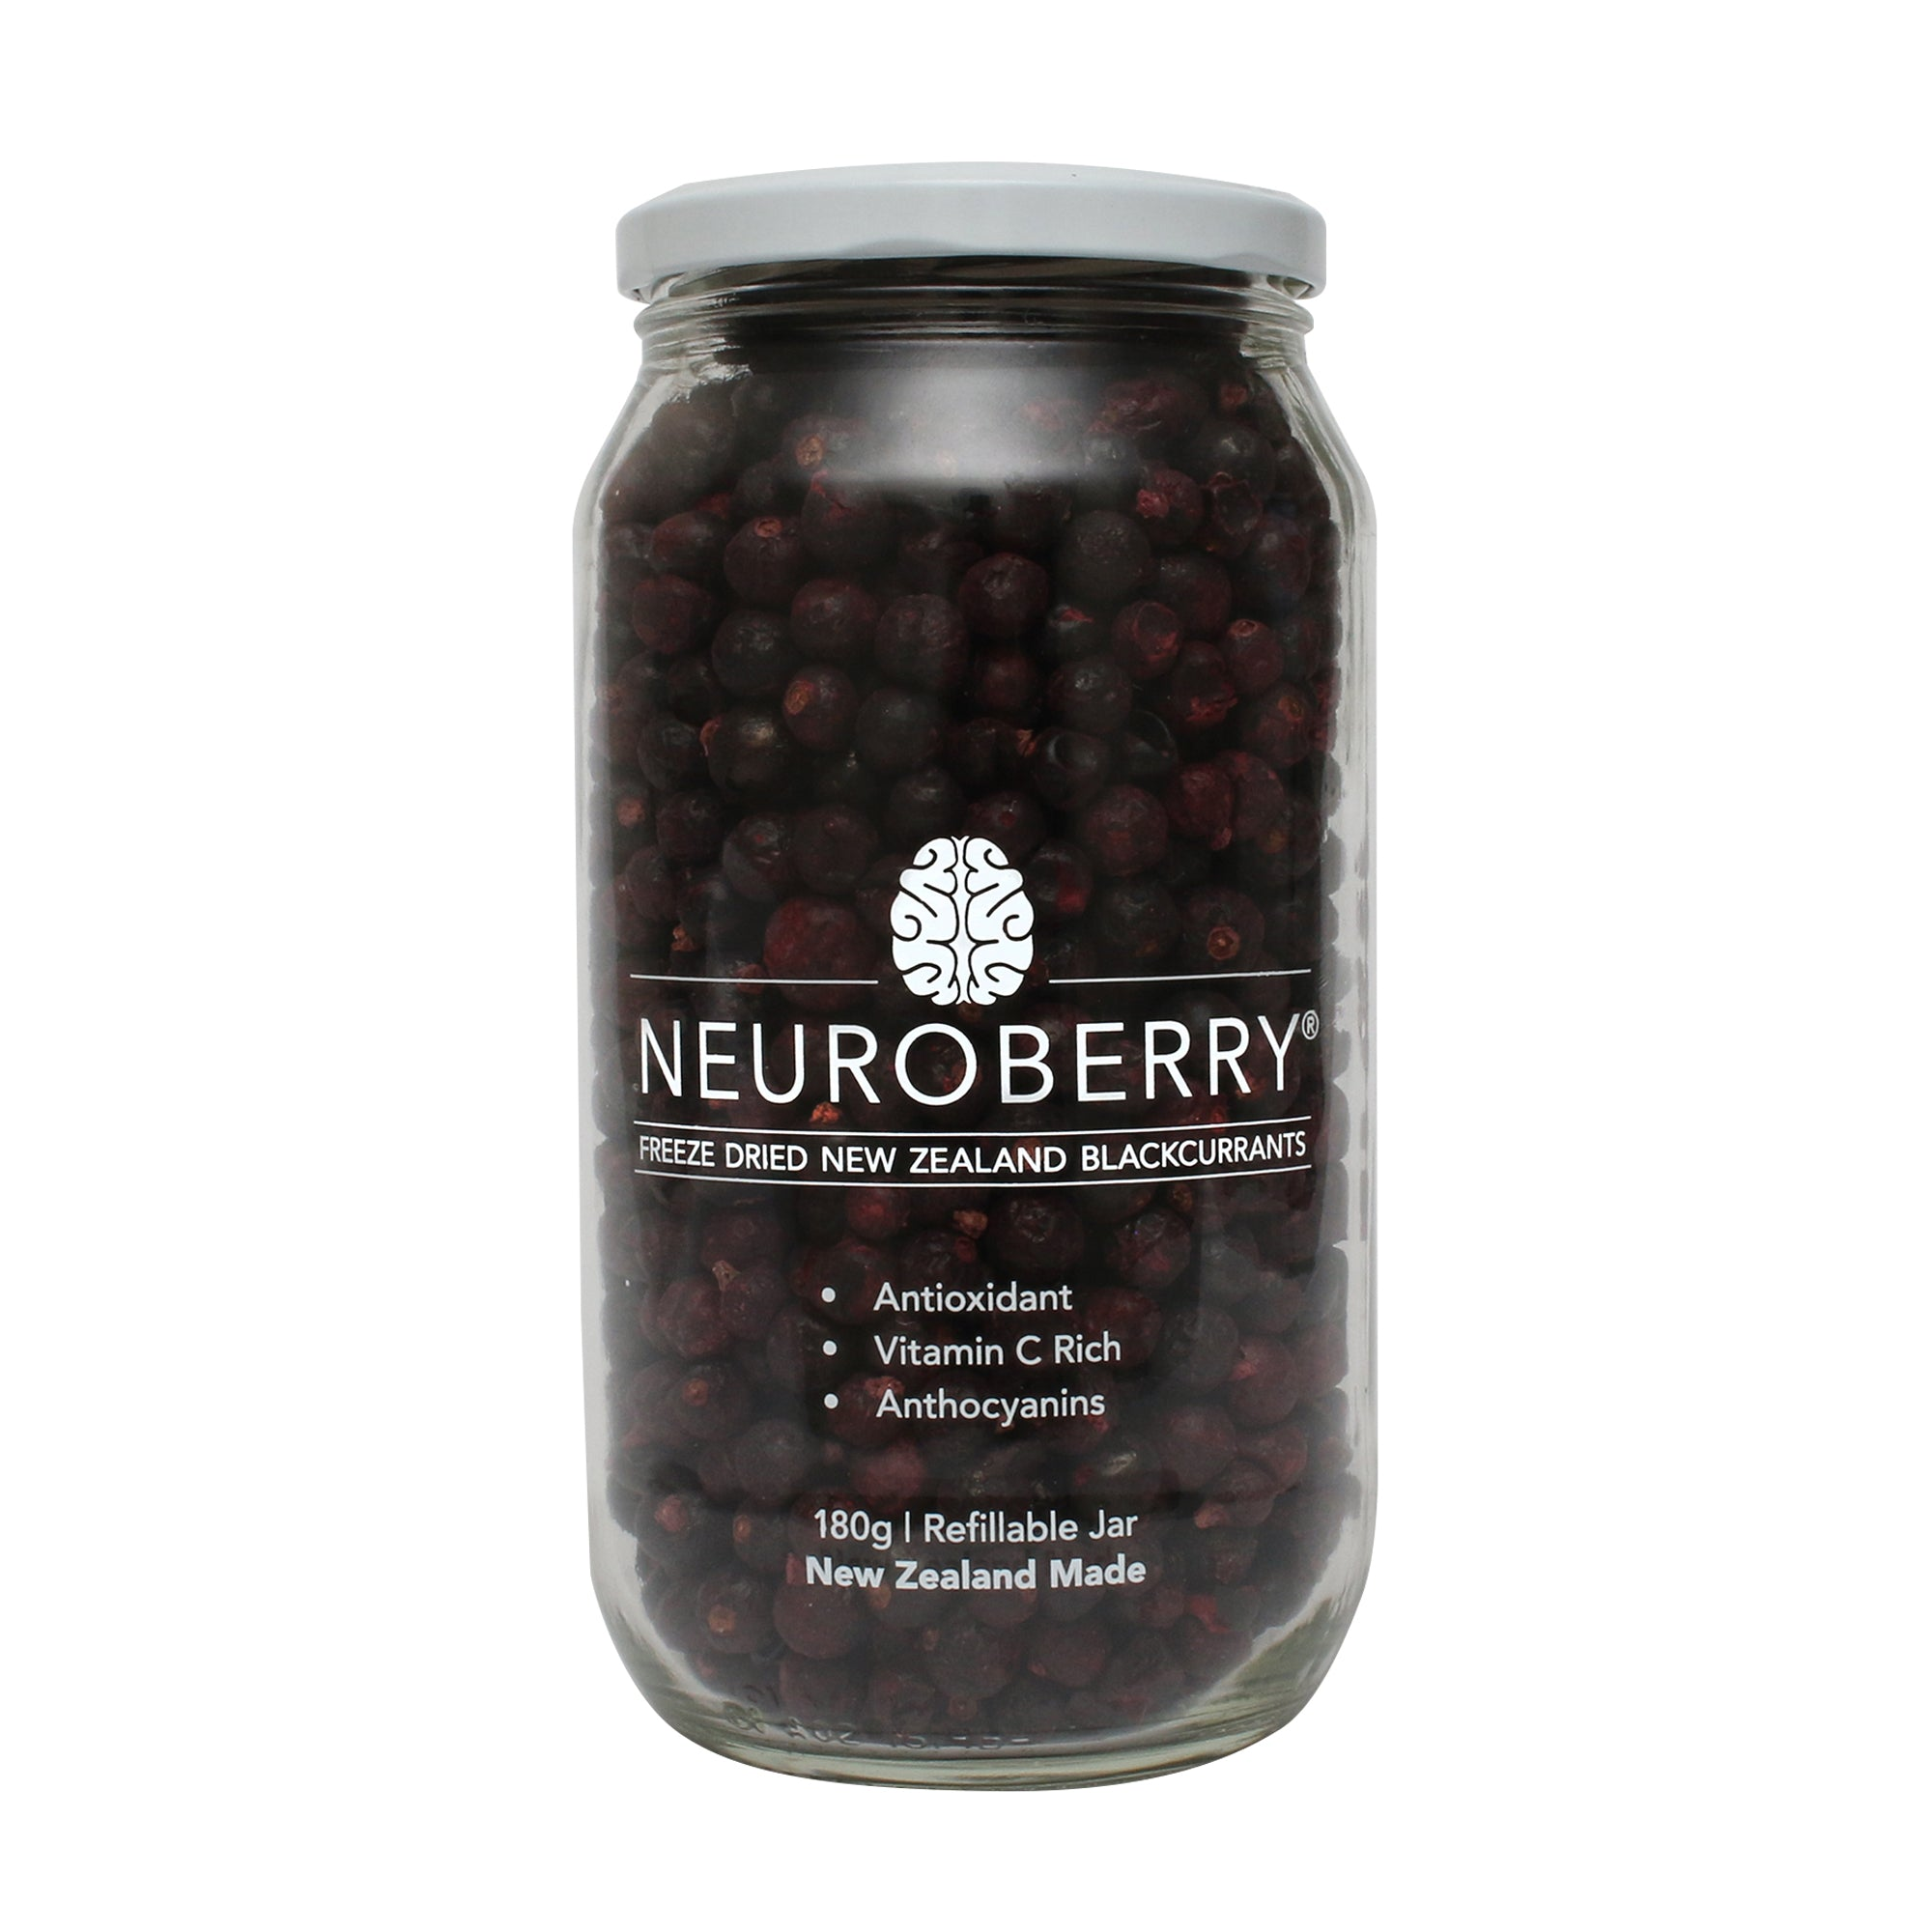 Freeze Dried Neuroberry - Drink Ārepa, For Mental Clarity, Natural Nootropic, Nootropic Drink, Smart Drink, Brain Drink, Performance Drink, Nootropics, Health Drink, Wellness Tonic, Brain Food, Braintenance, Smart Foods, Nootropic Powder, Neuroberry, Blackcurrant Drink, Pine Bark Extract, Blackcurrant Extract,